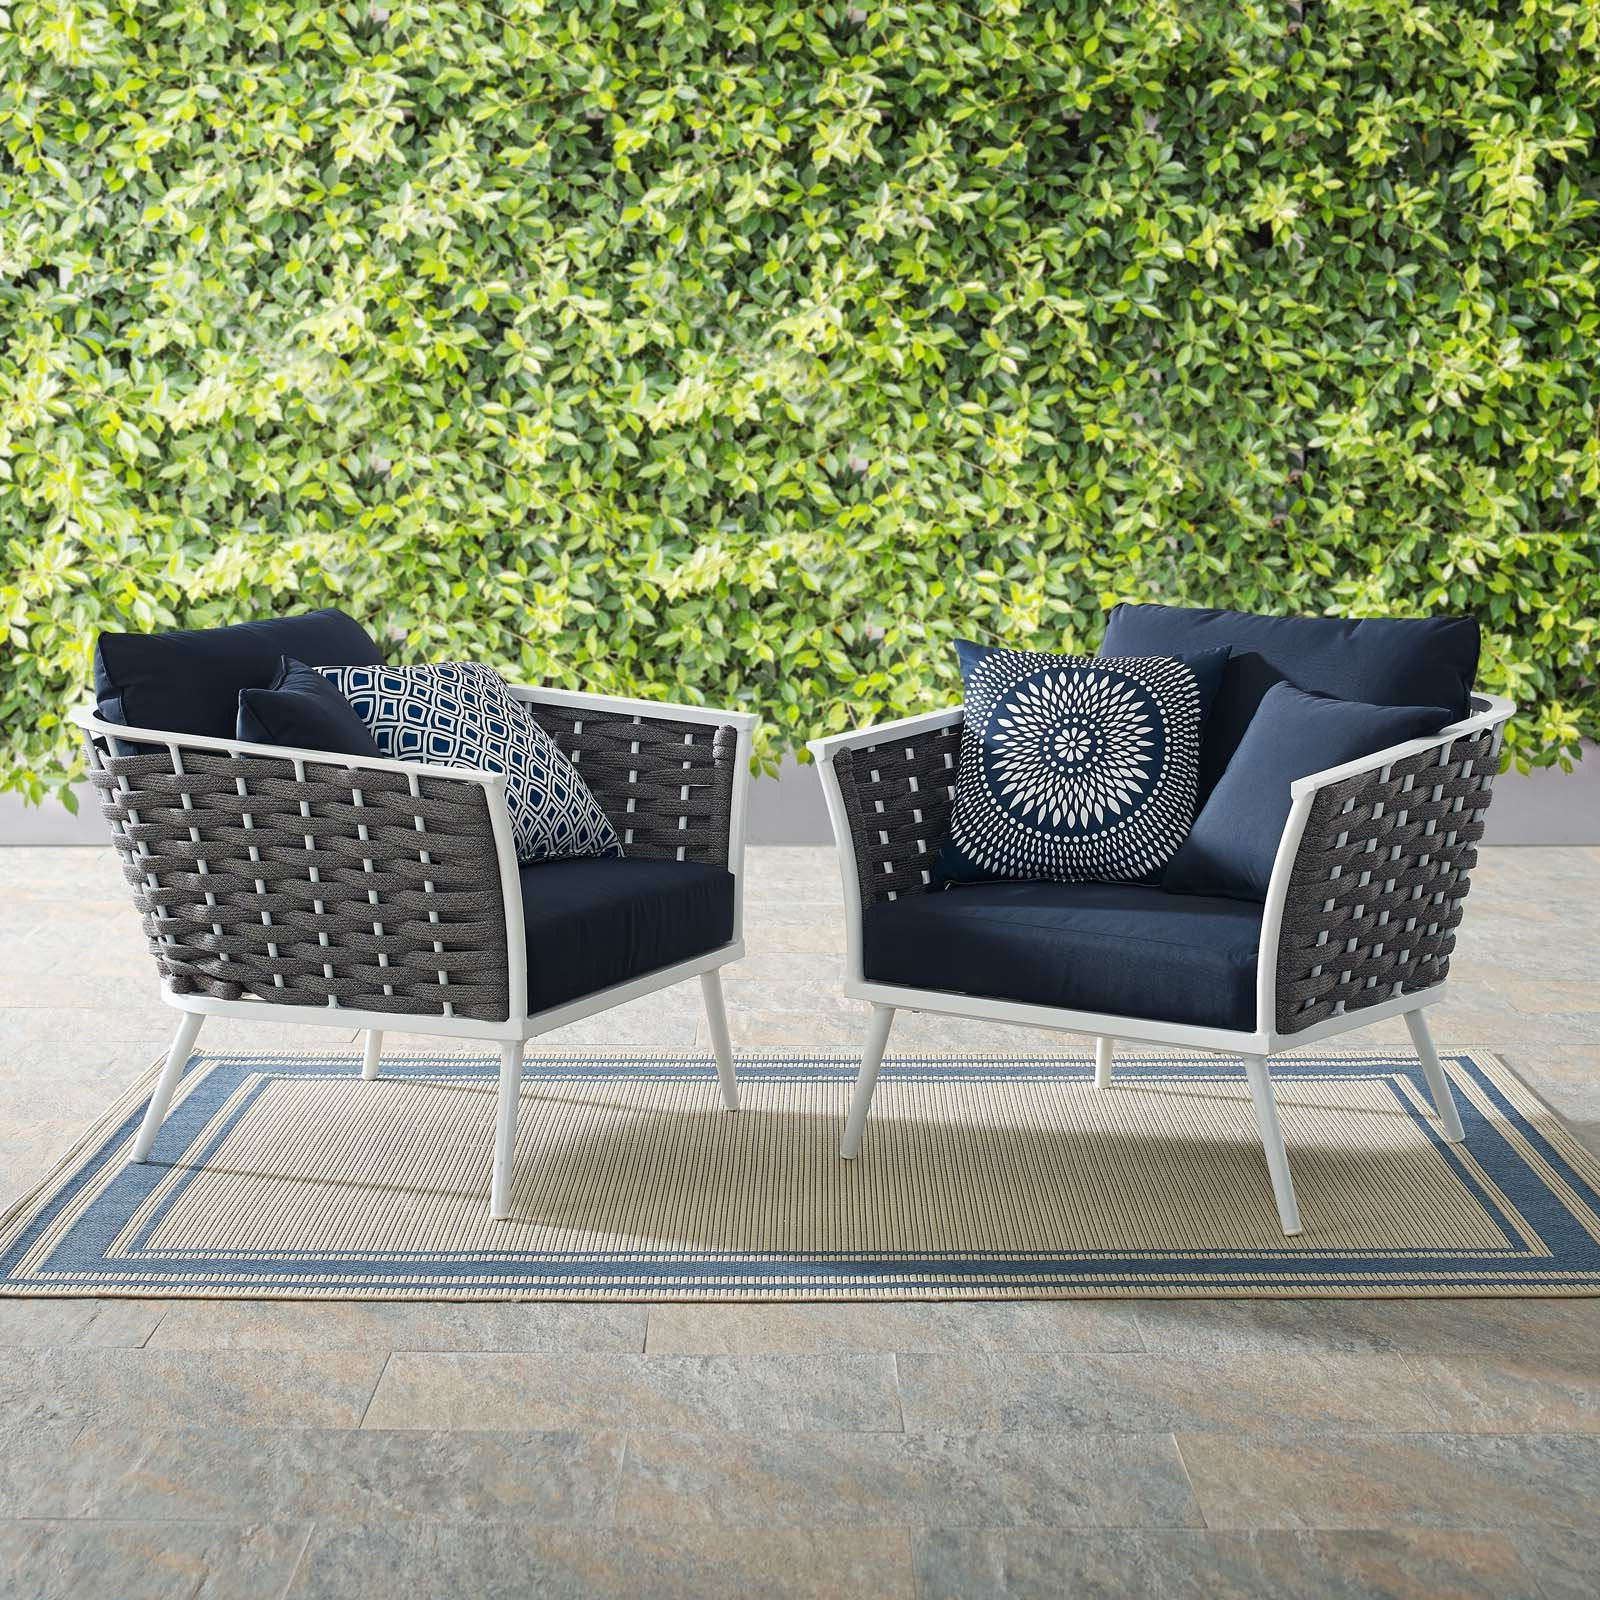 Popular Rossville Patio Chair With Cushions Within Rossville Outdoor Patio Sofas With Cushions (View 4 of 25)